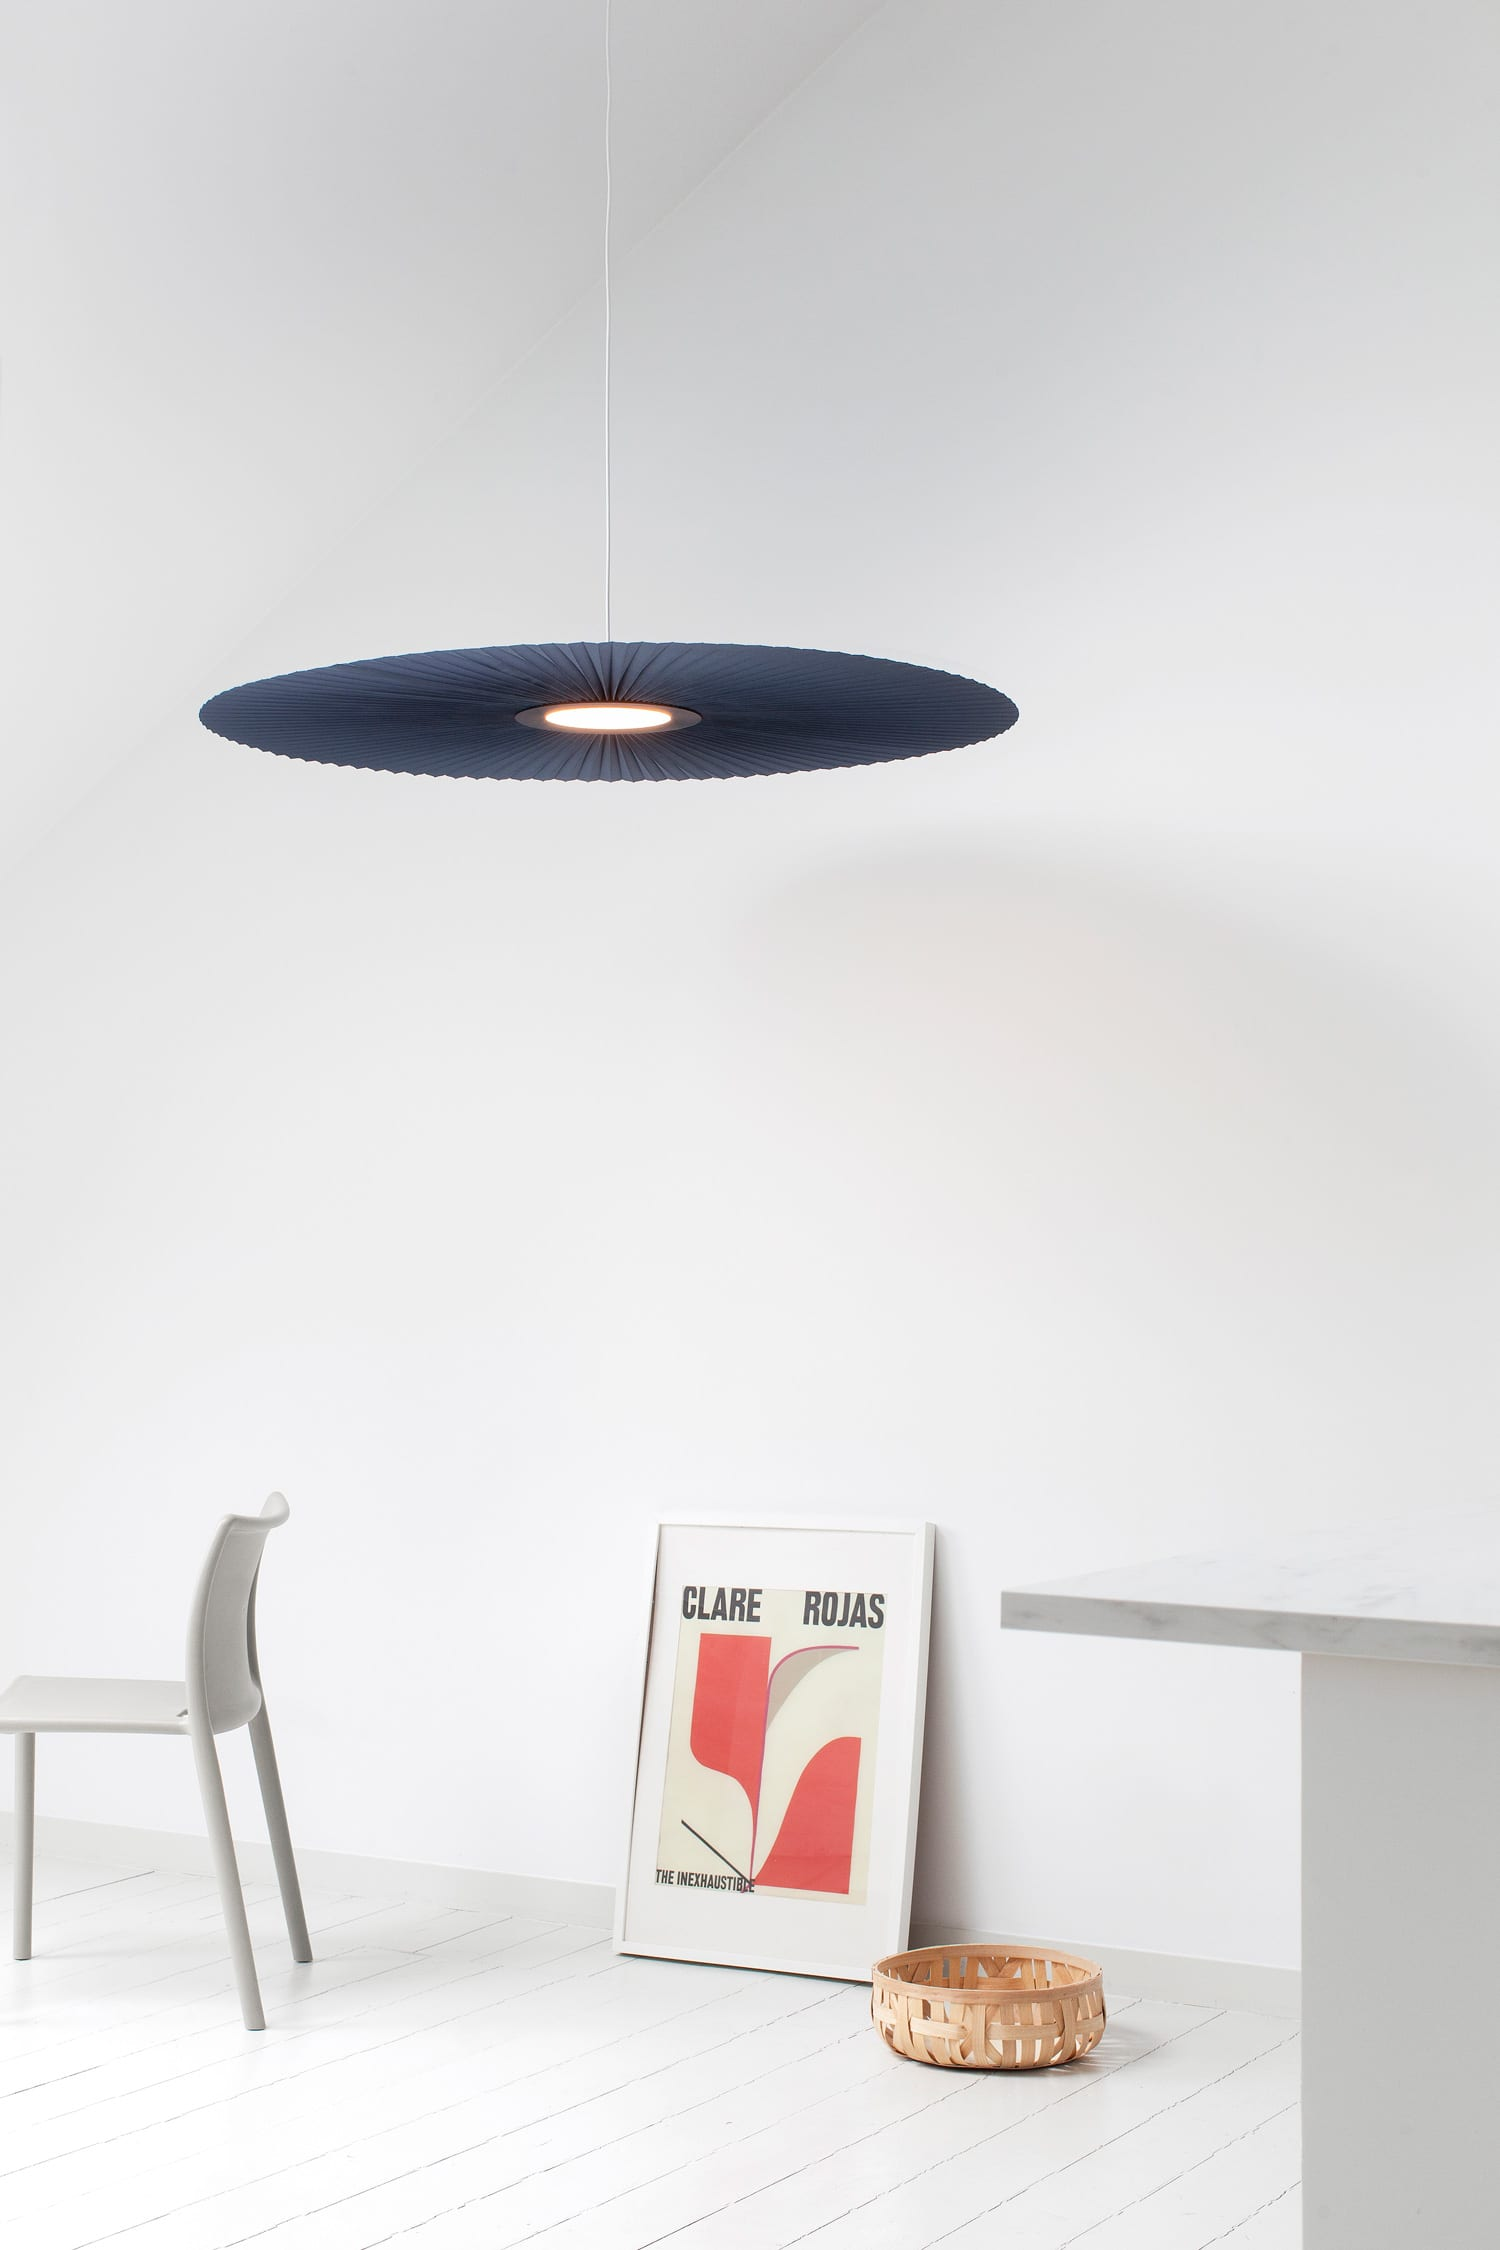 Carmen Light by Harto for Pauline Plus Luis at Maison & Objet 2019 | Yellowtrace